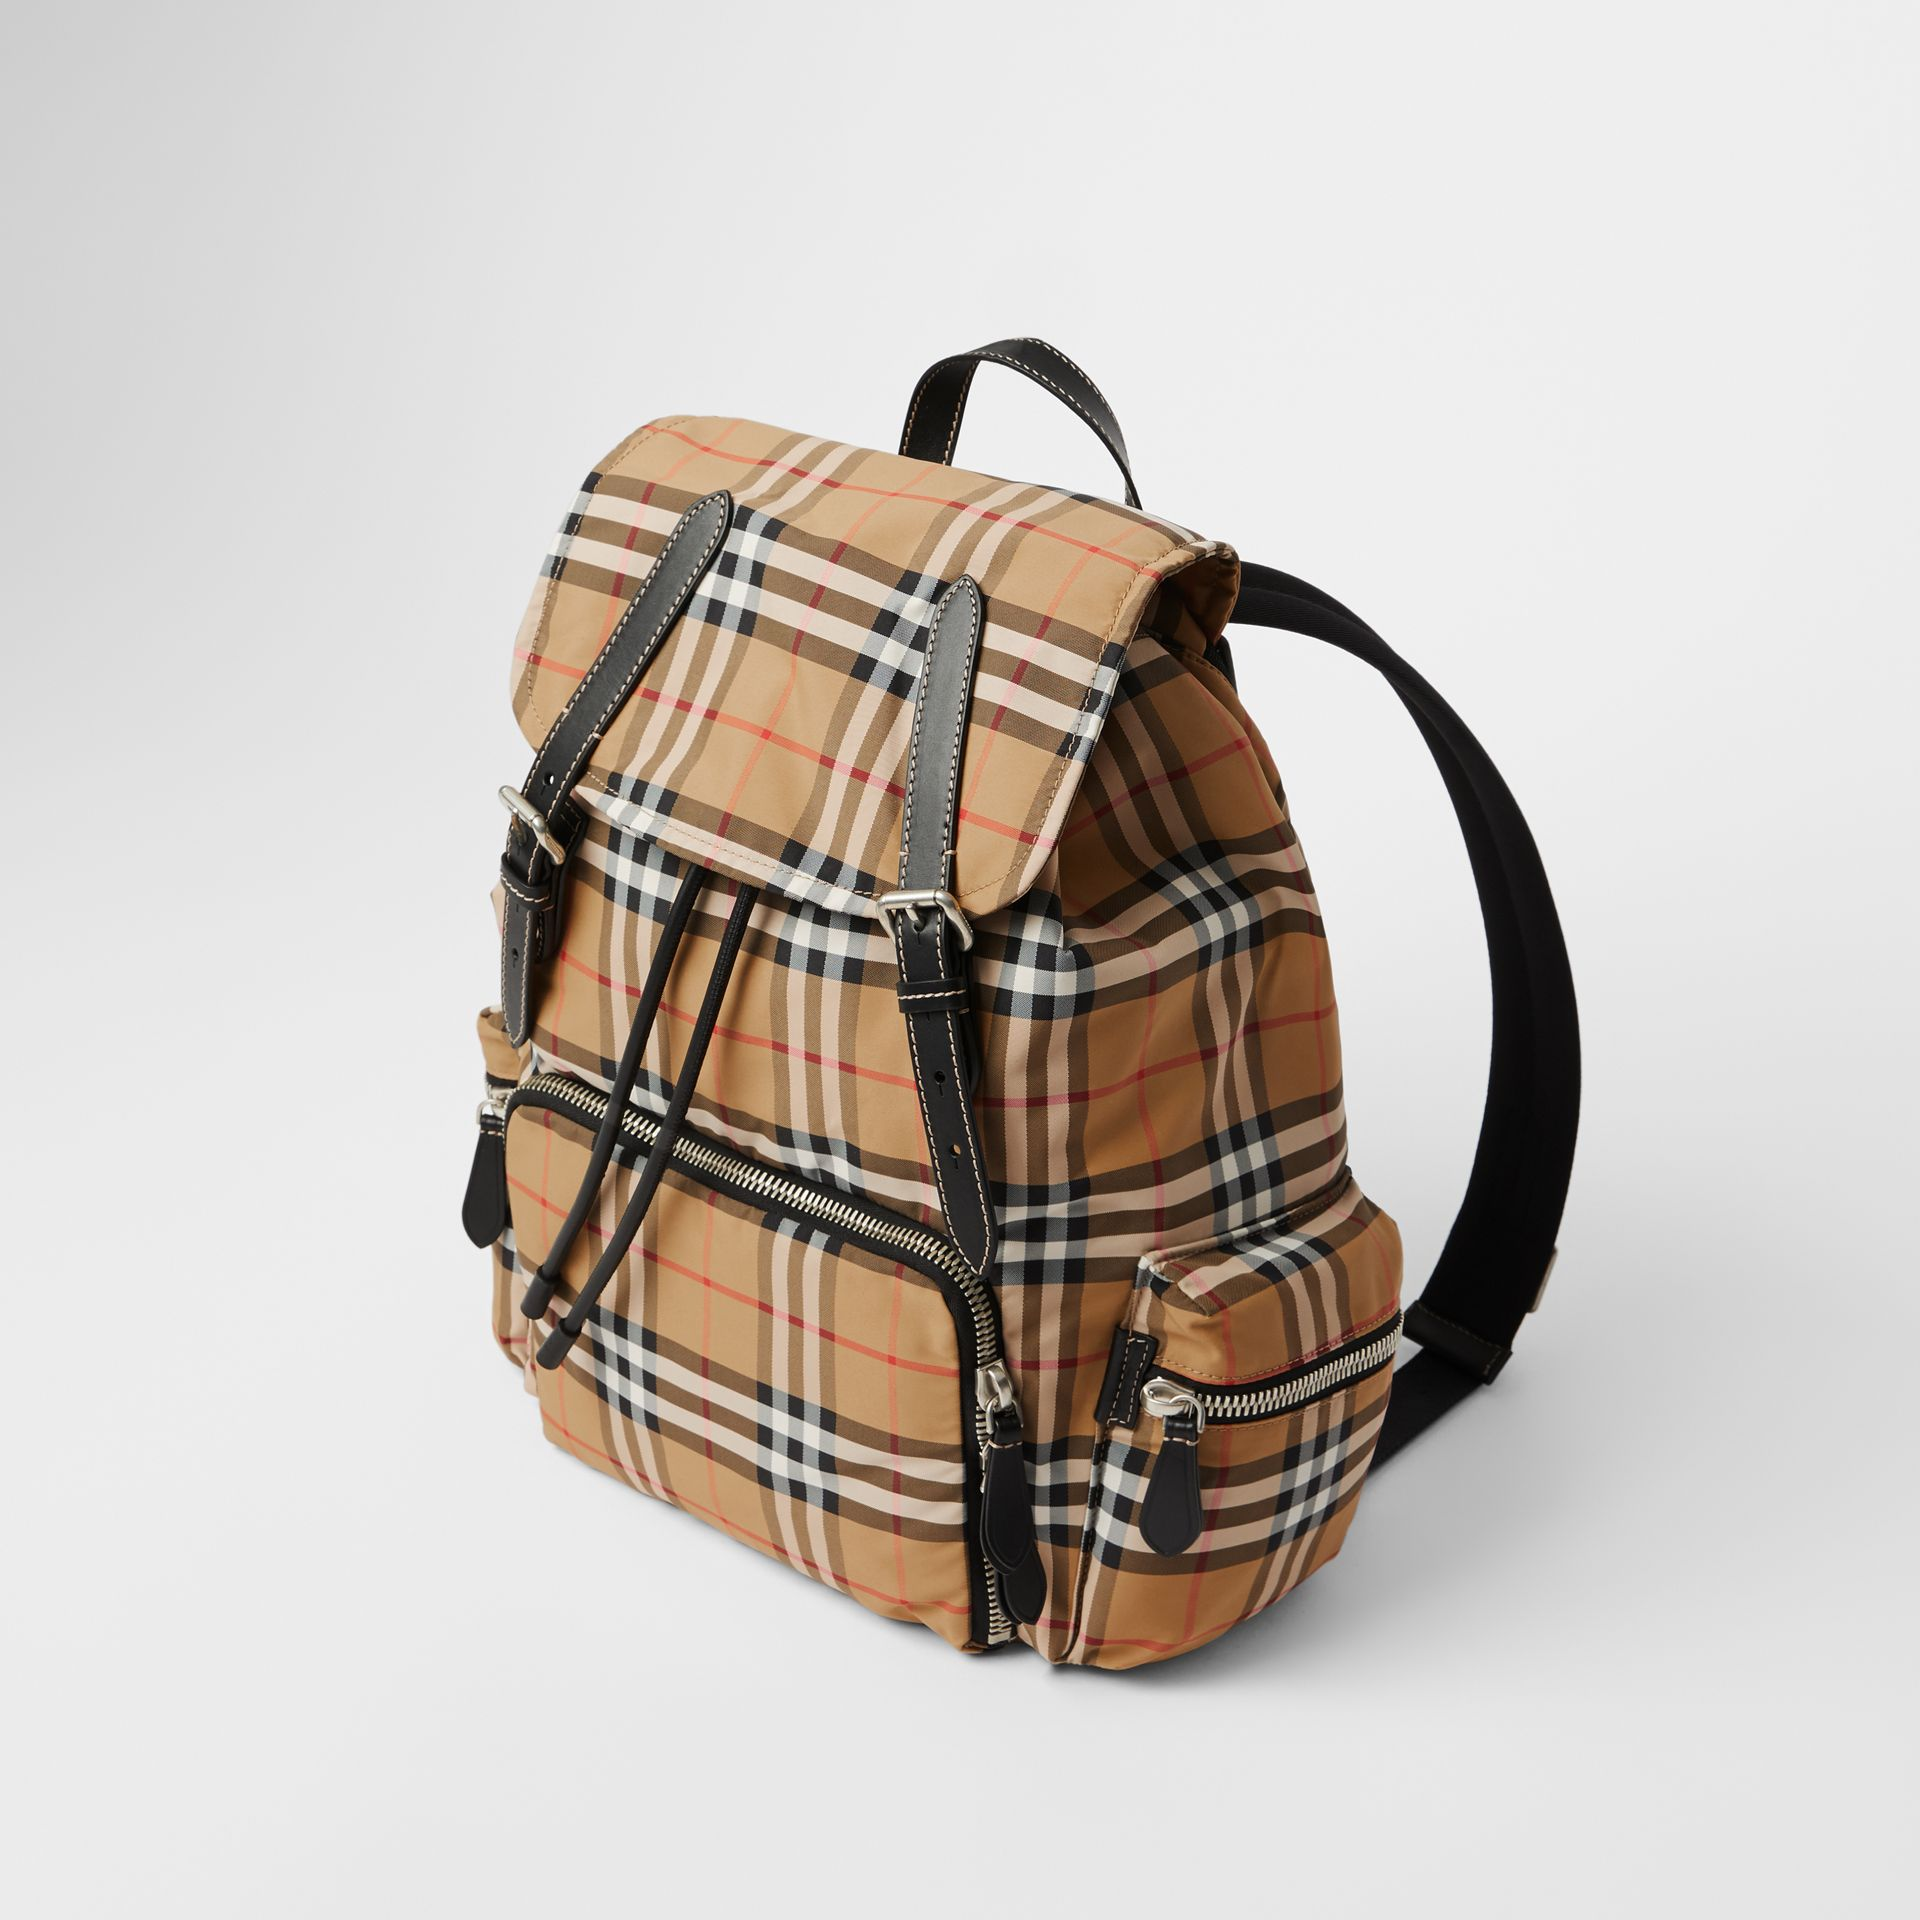 Grand sac The Rucksack en nylon à motif Vintage check (Jaune Antique) - Homme | Burberry - photo de la galerie 3